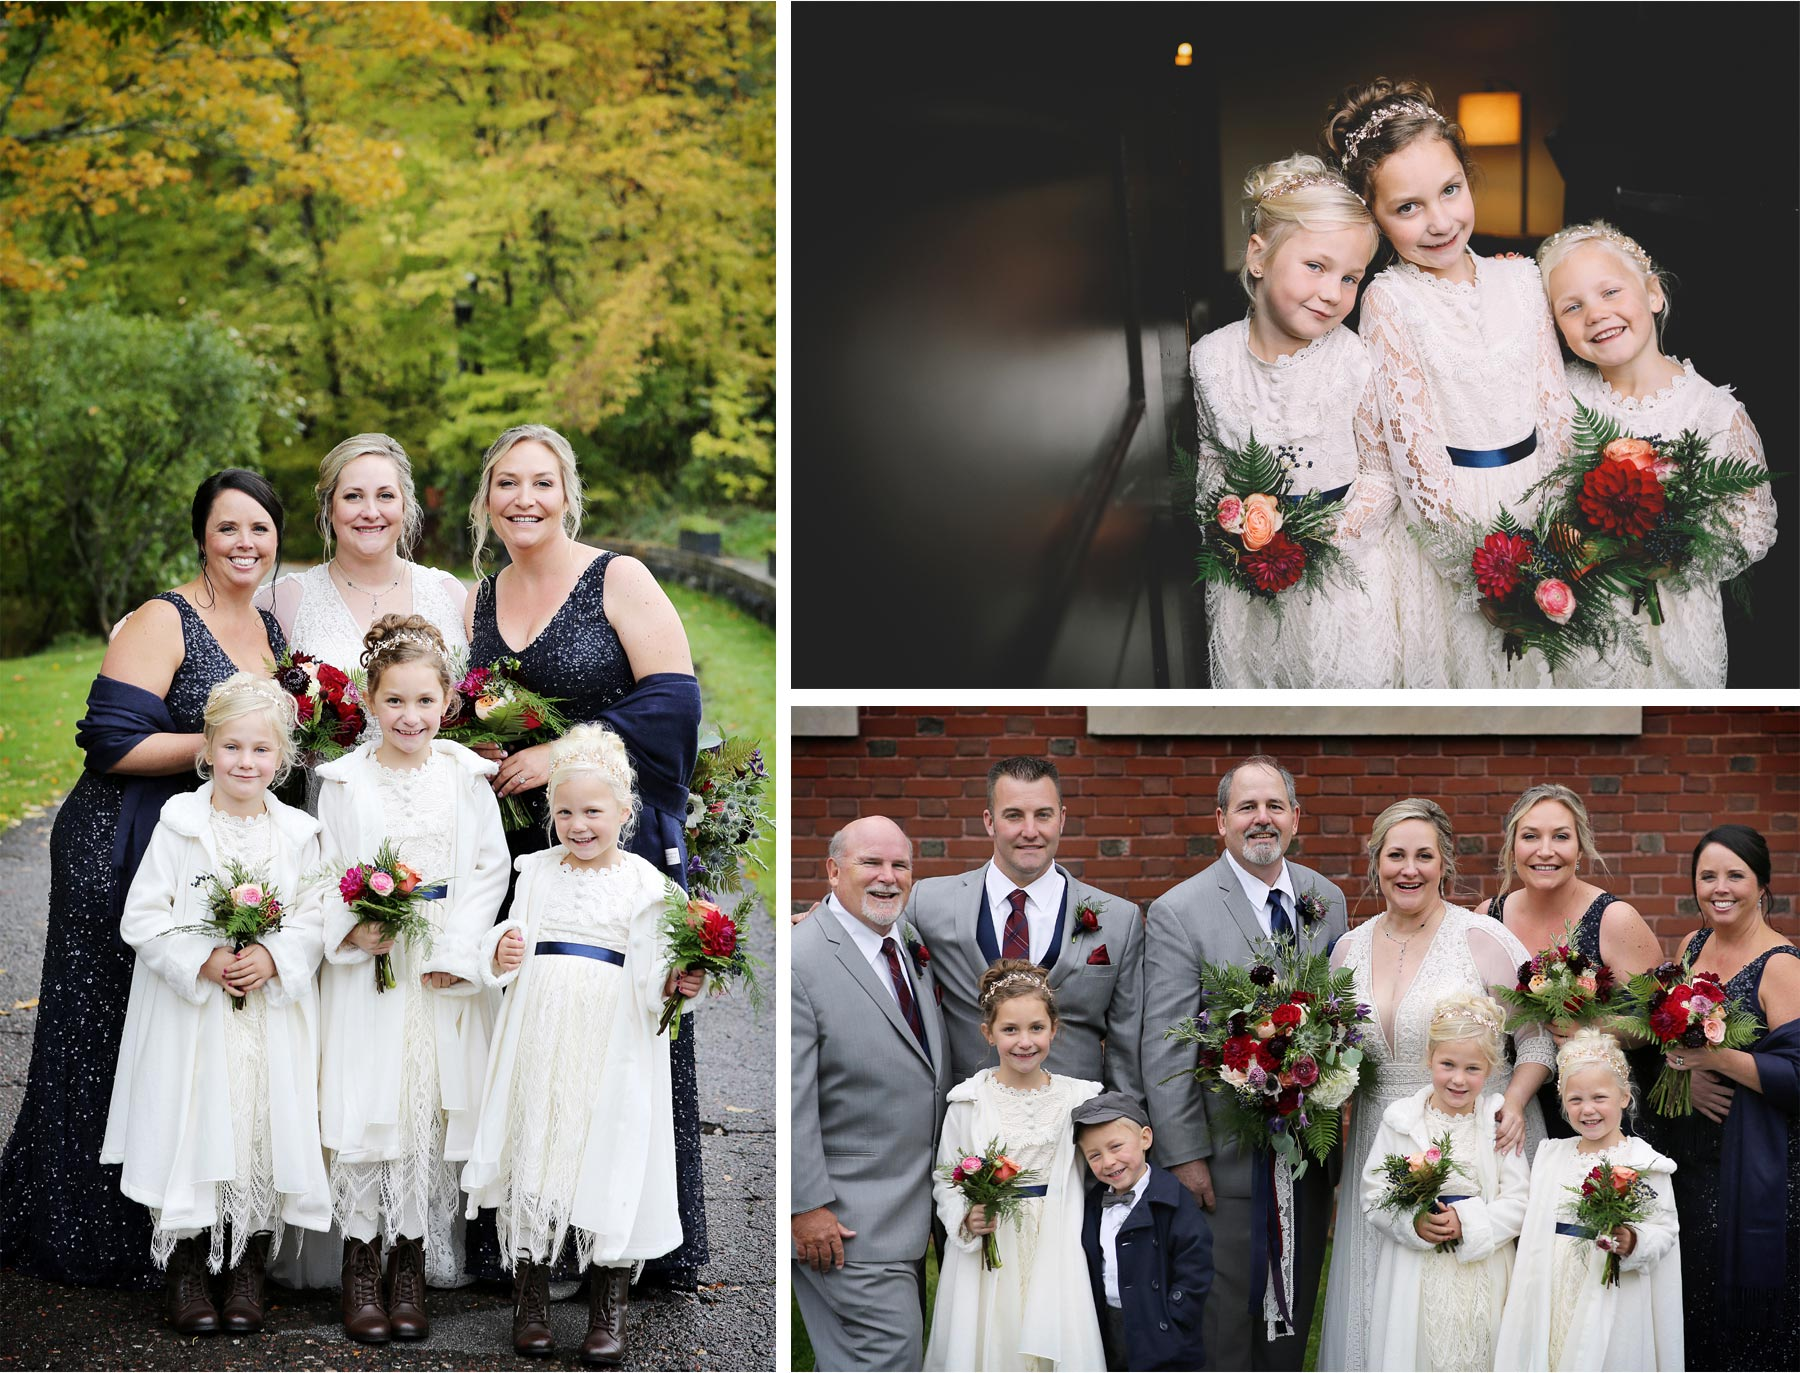 10-Duluth-Minnesota-Wedding-Photography-by-Vick-Photography-Glensheen-Mansion-FLower-Girls-Wedding-Party-Groups-Kelli-and-Marc.jpg